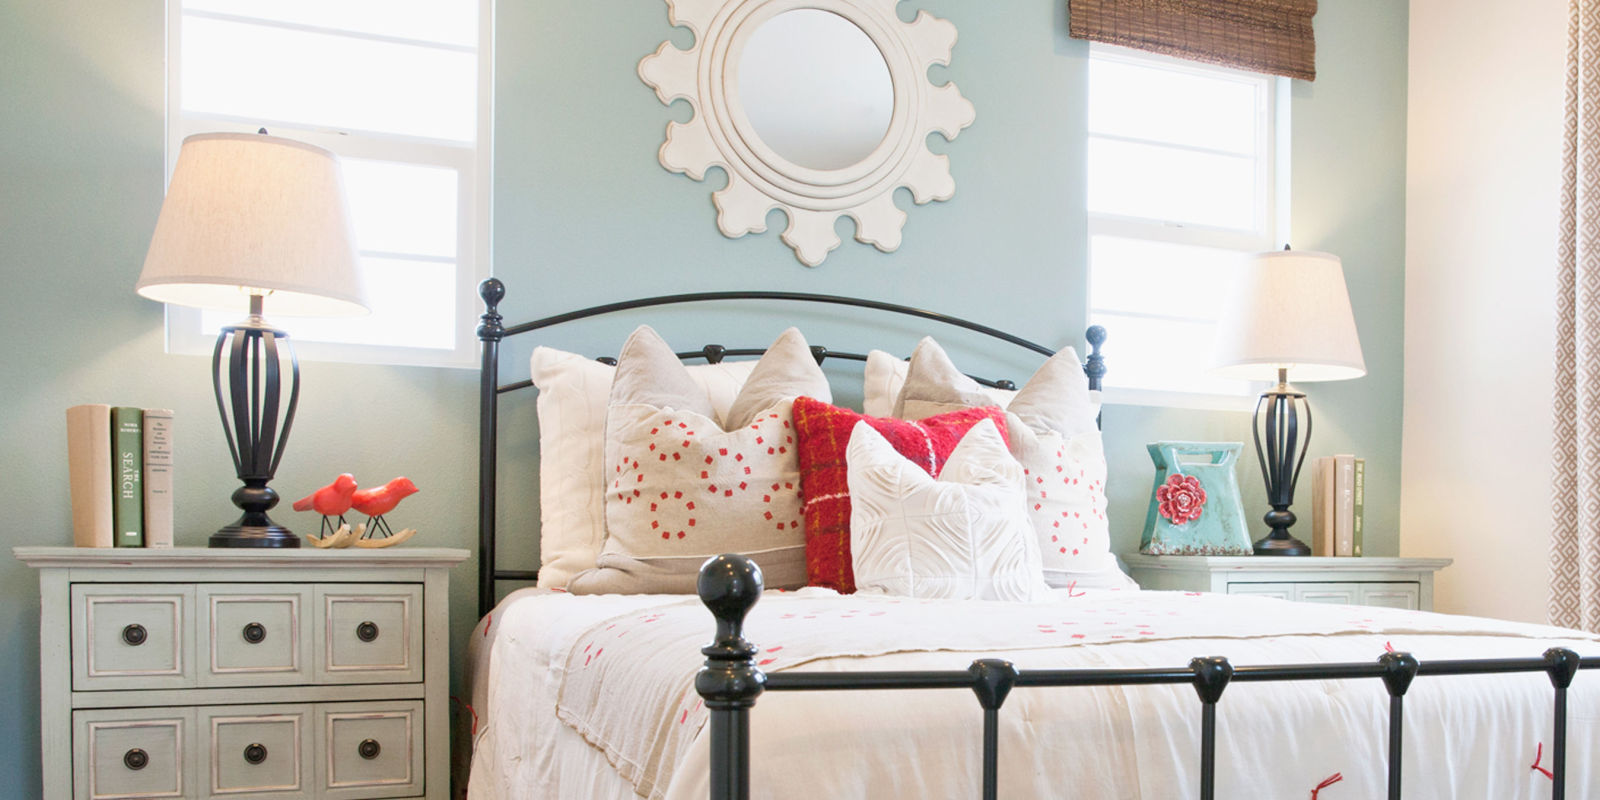 What To Put In A Guest Room